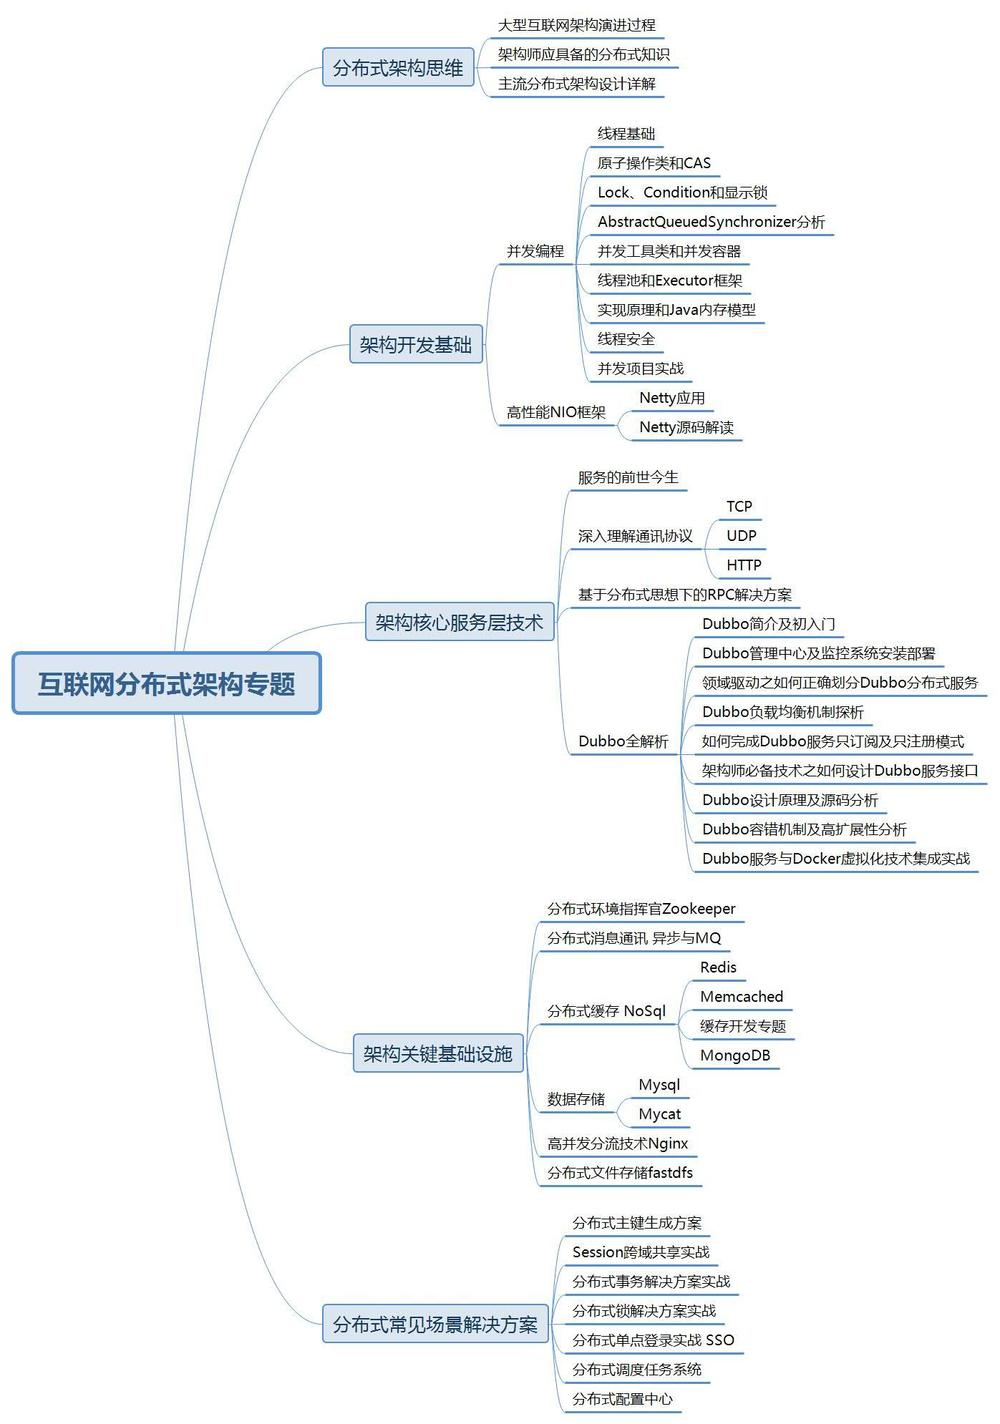 Java backend architect technical map - Programmer Sought